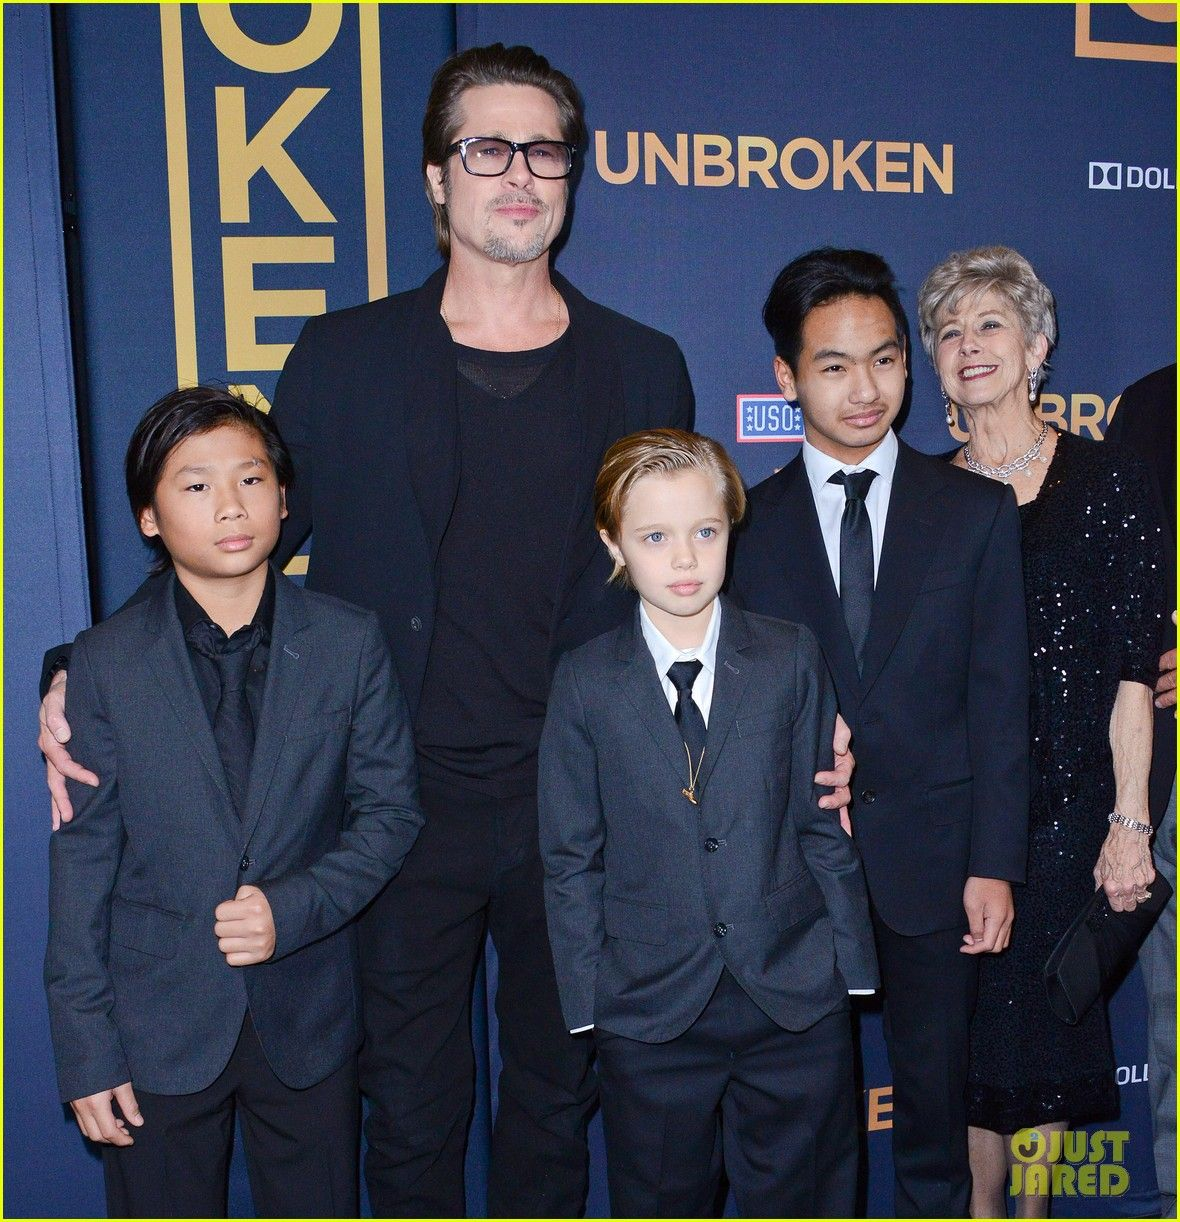 brad-pitt-brings-family-to-unbroken-hollywood-premiere-14